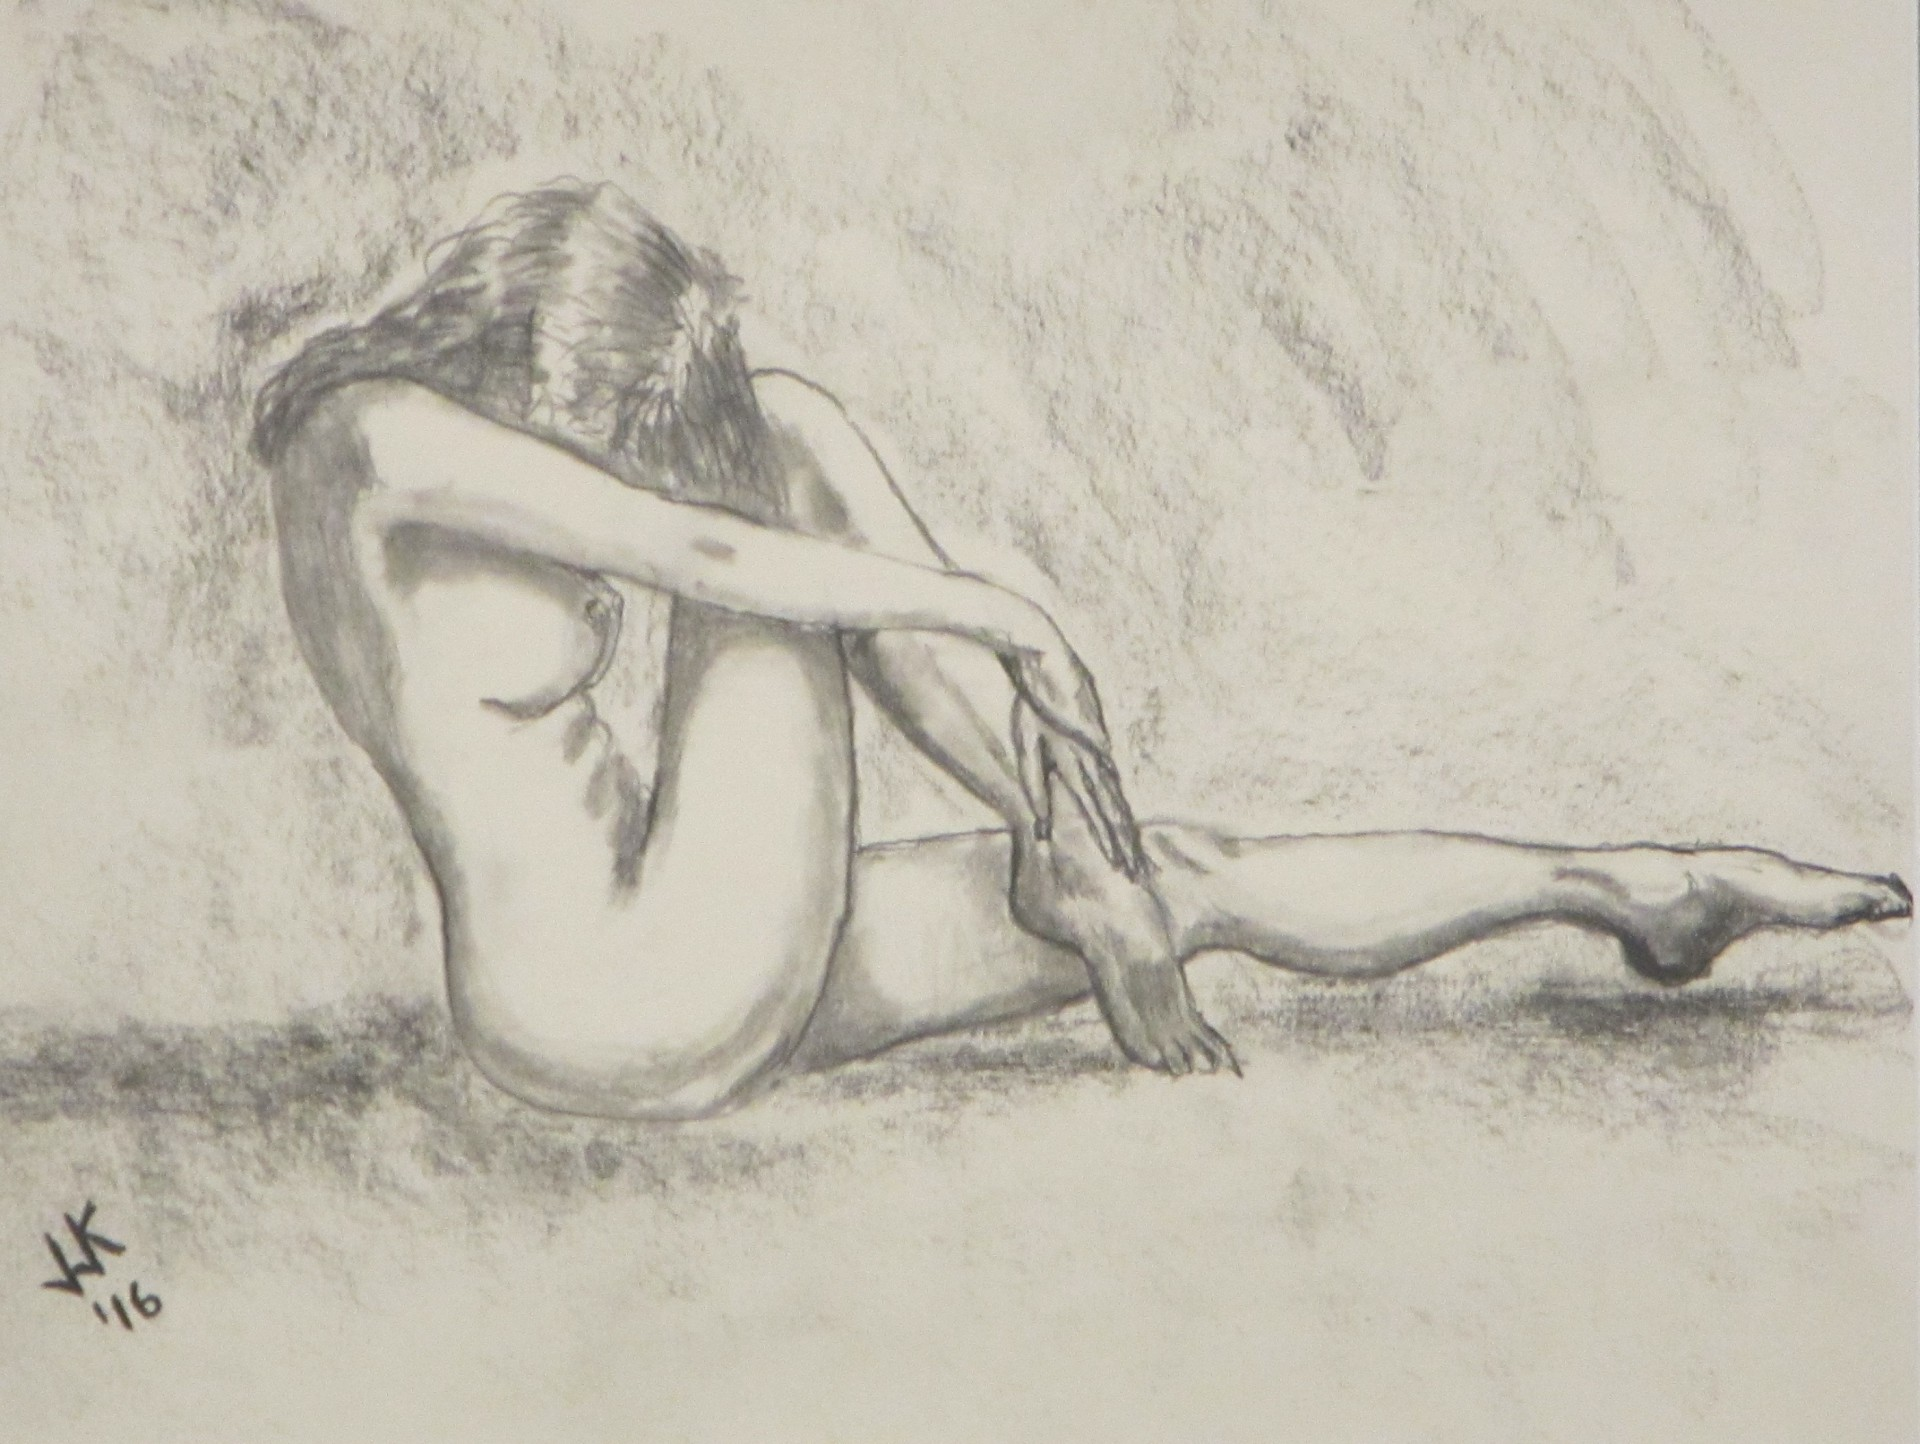 A nude woman acting coy.